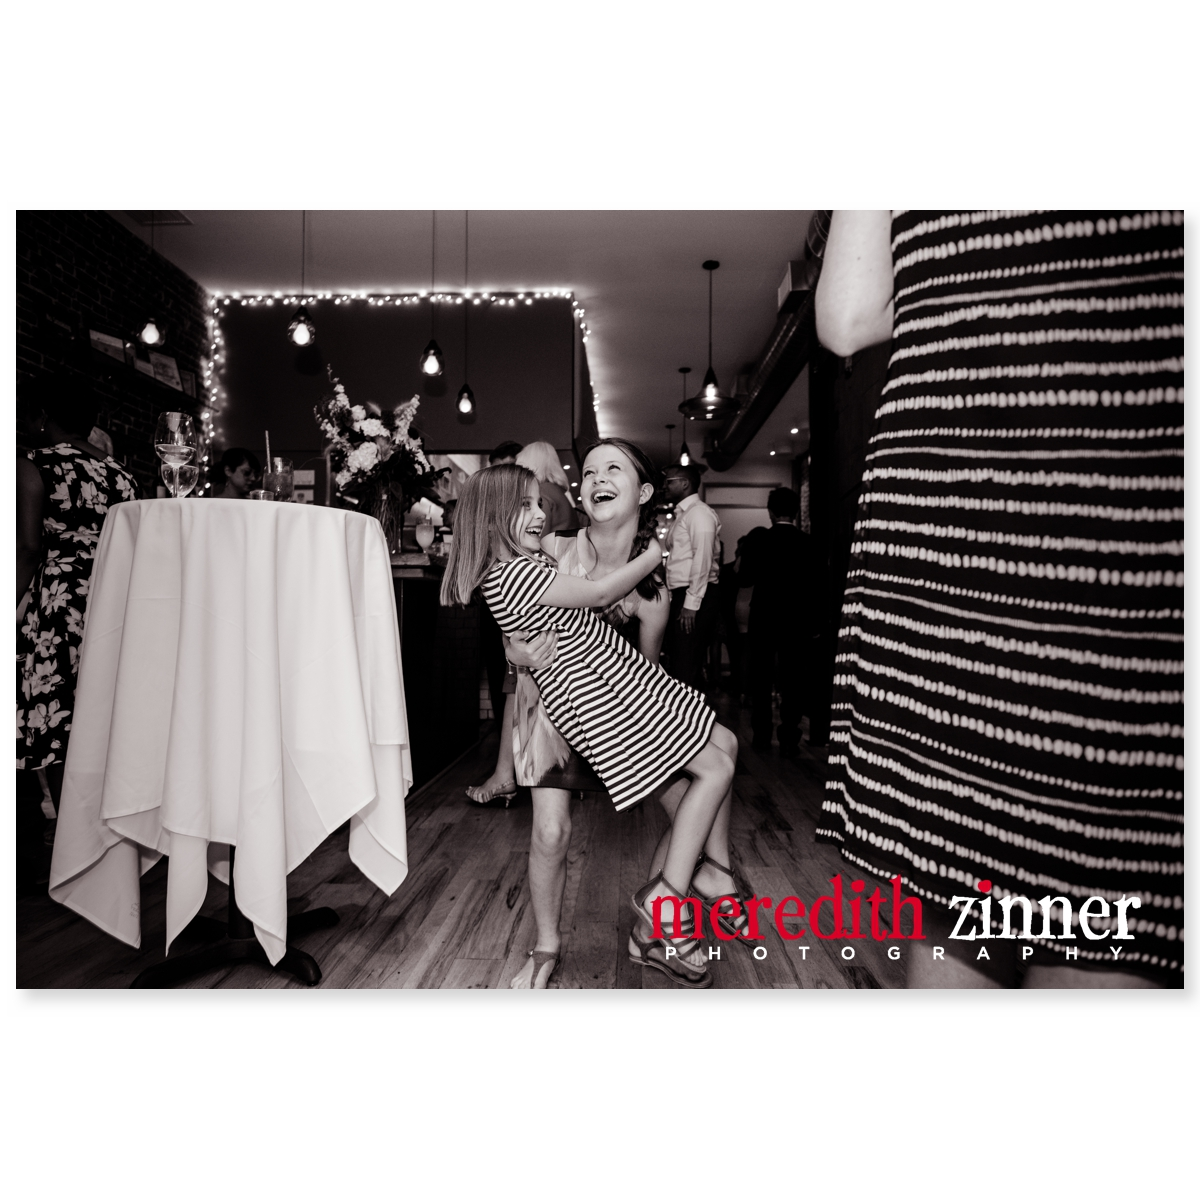 Meredith_Zinner_Photography_StilesCelebration_0135